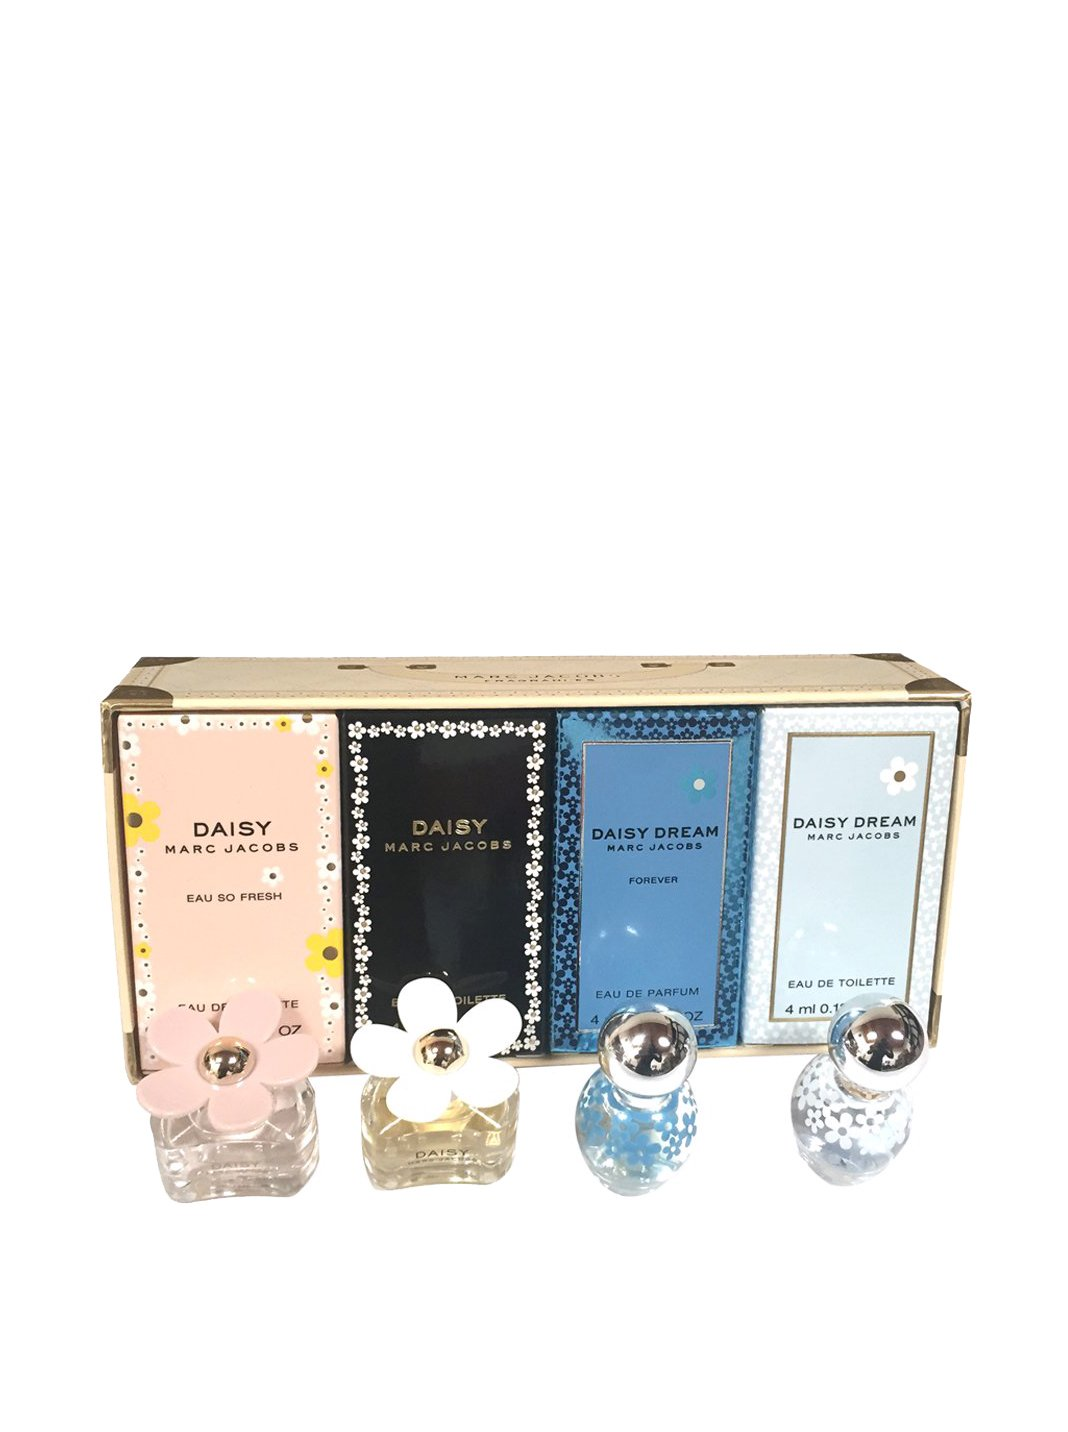 MARC JACOBS 4 Piece Daisy Perfume Mini Set, 1 Fluid Ounce